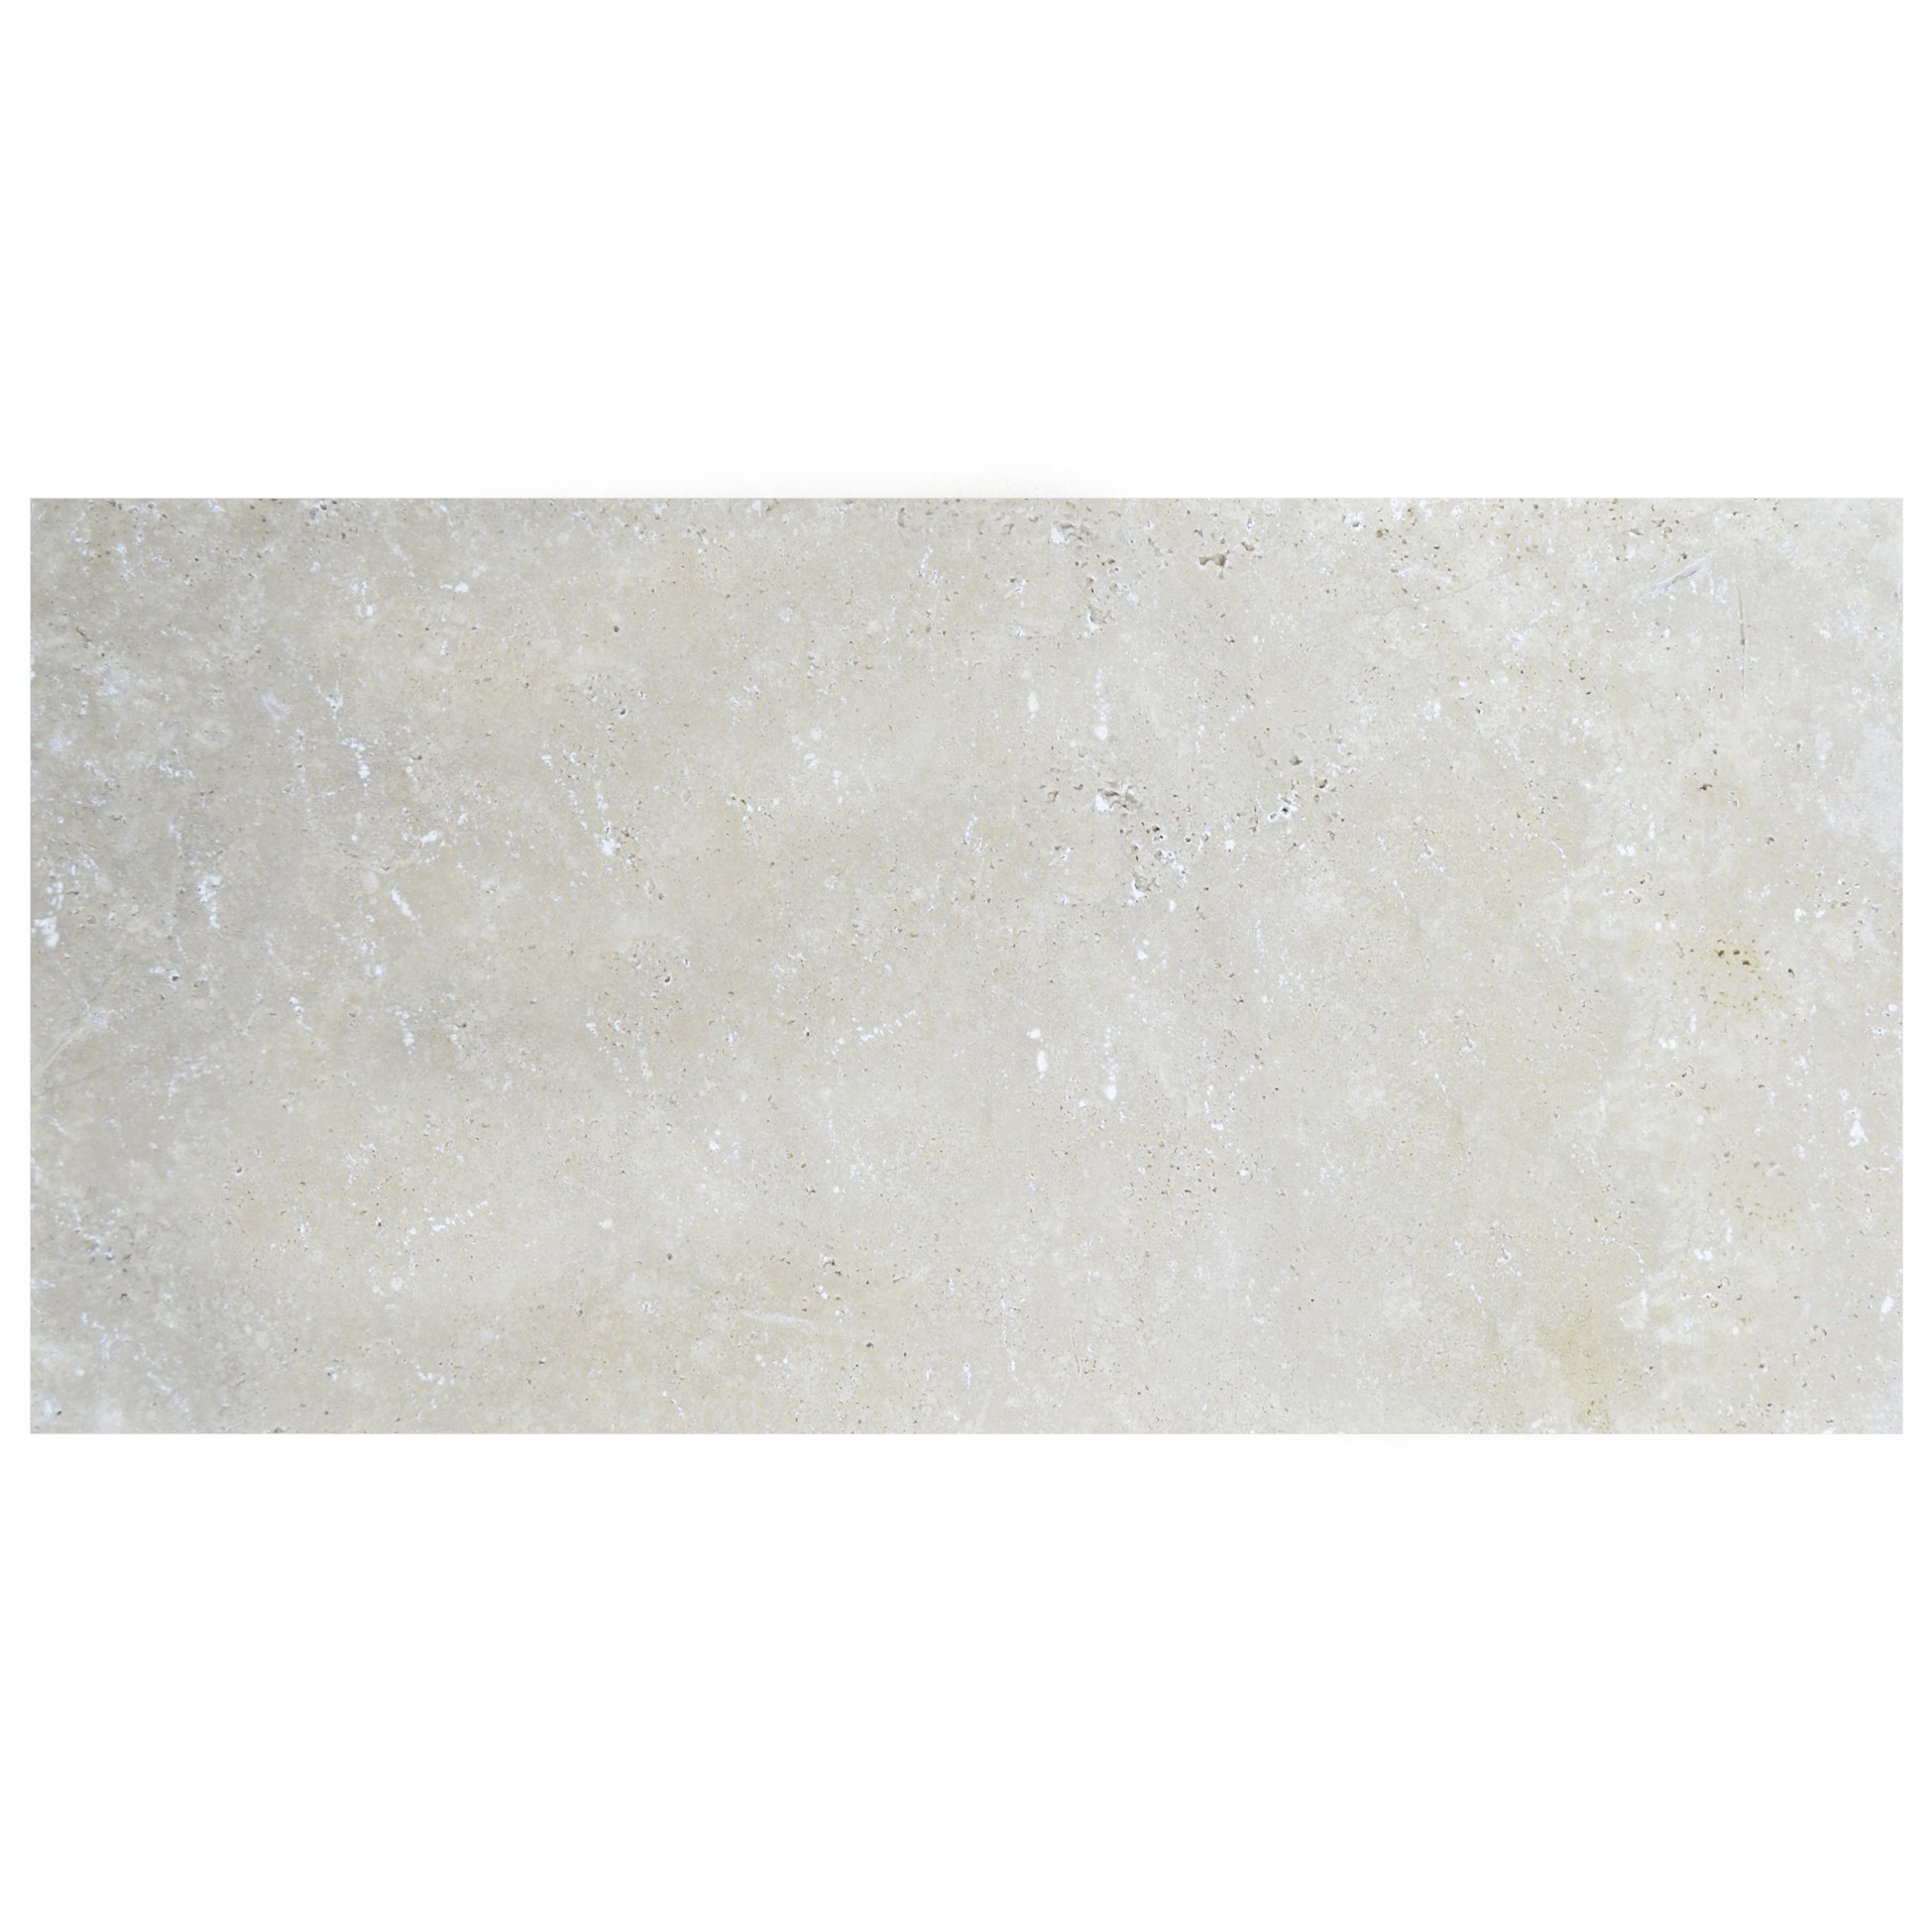 Ivory Tumbled Travertine Pavers 12x24-pavers sale-Atlantic Stone Source